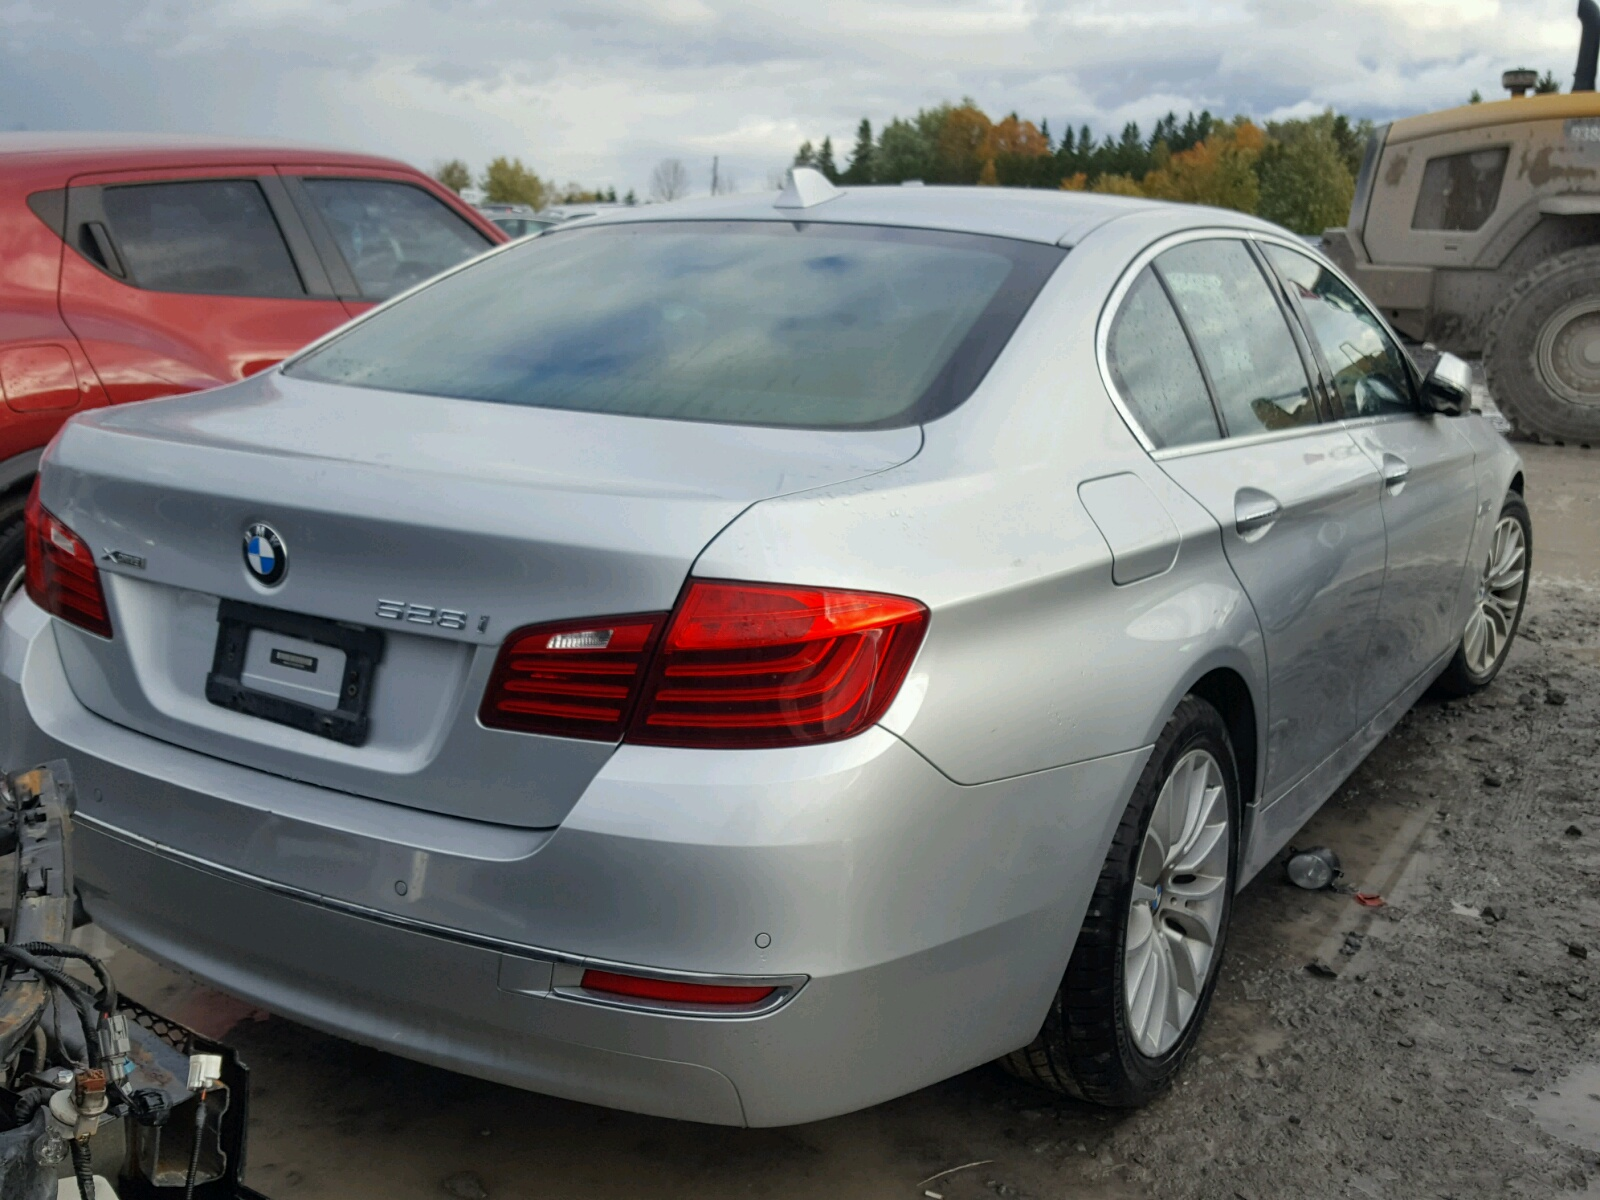 hight resolution of  wba5a7c55ed614526 2014 bmw 528 xi 2 0l rear view wba5a7c55ed614526